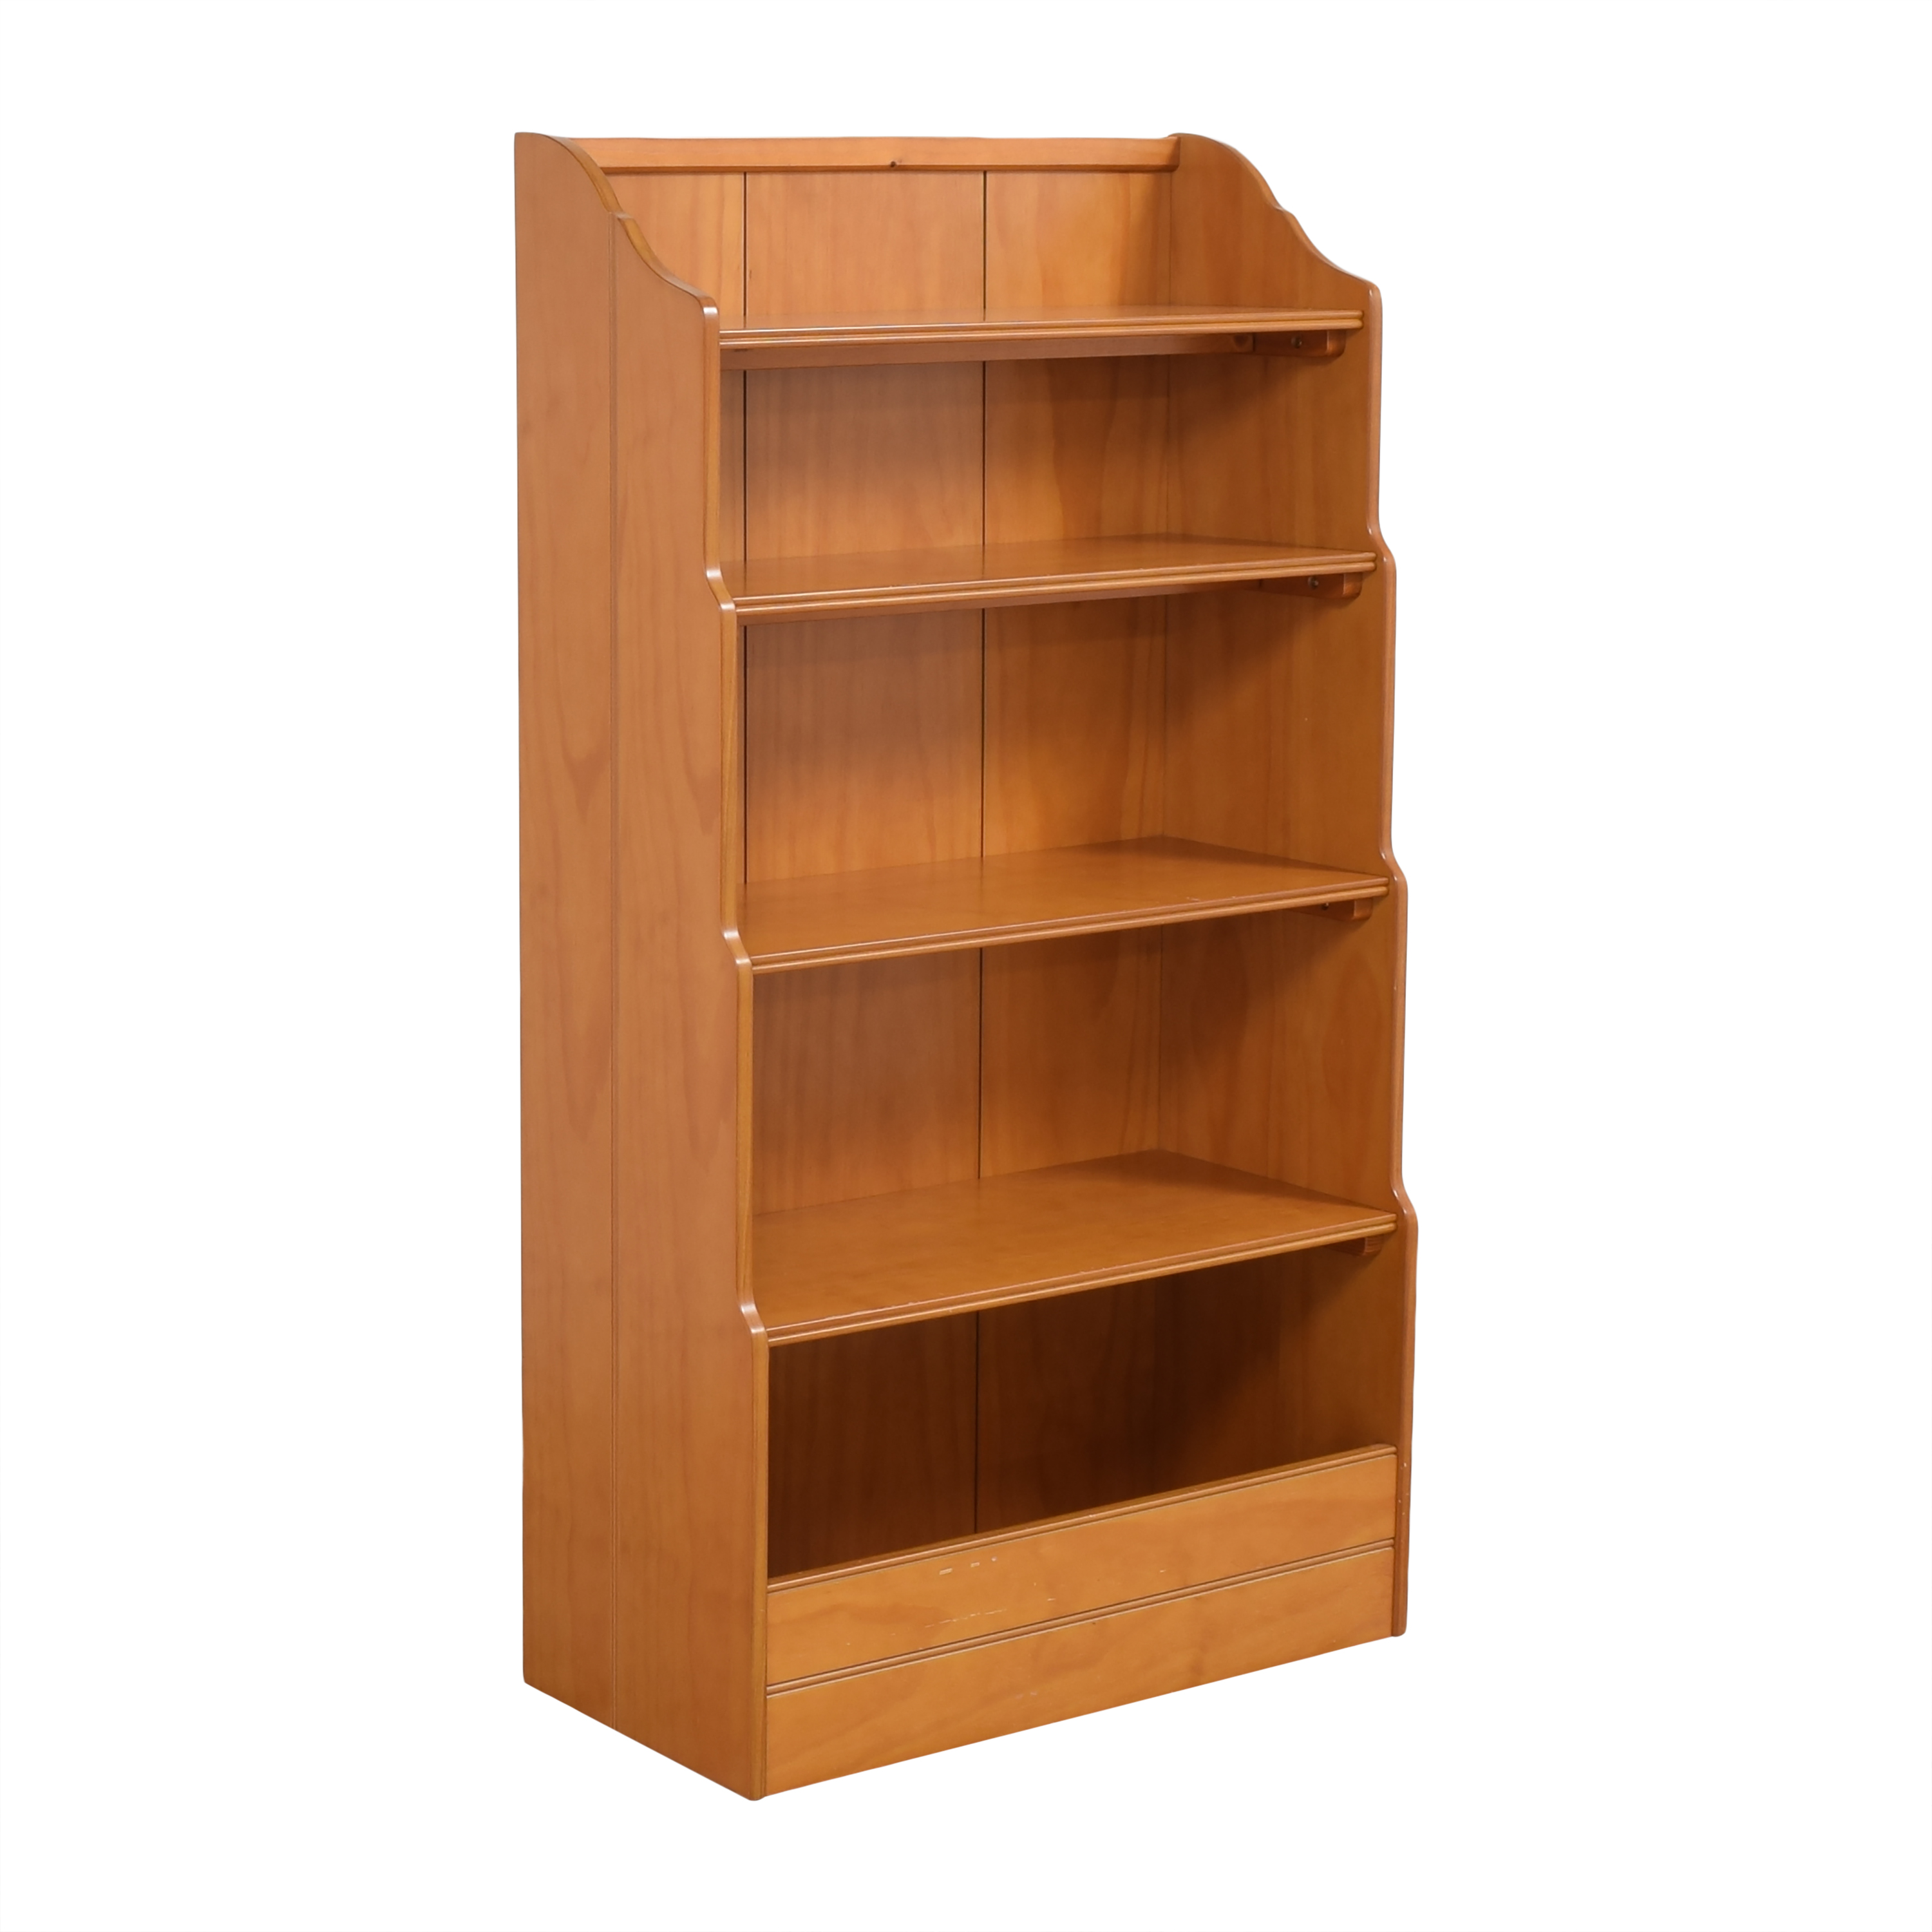 buy Land of Nod Land of Nod Open Top Bookcase online